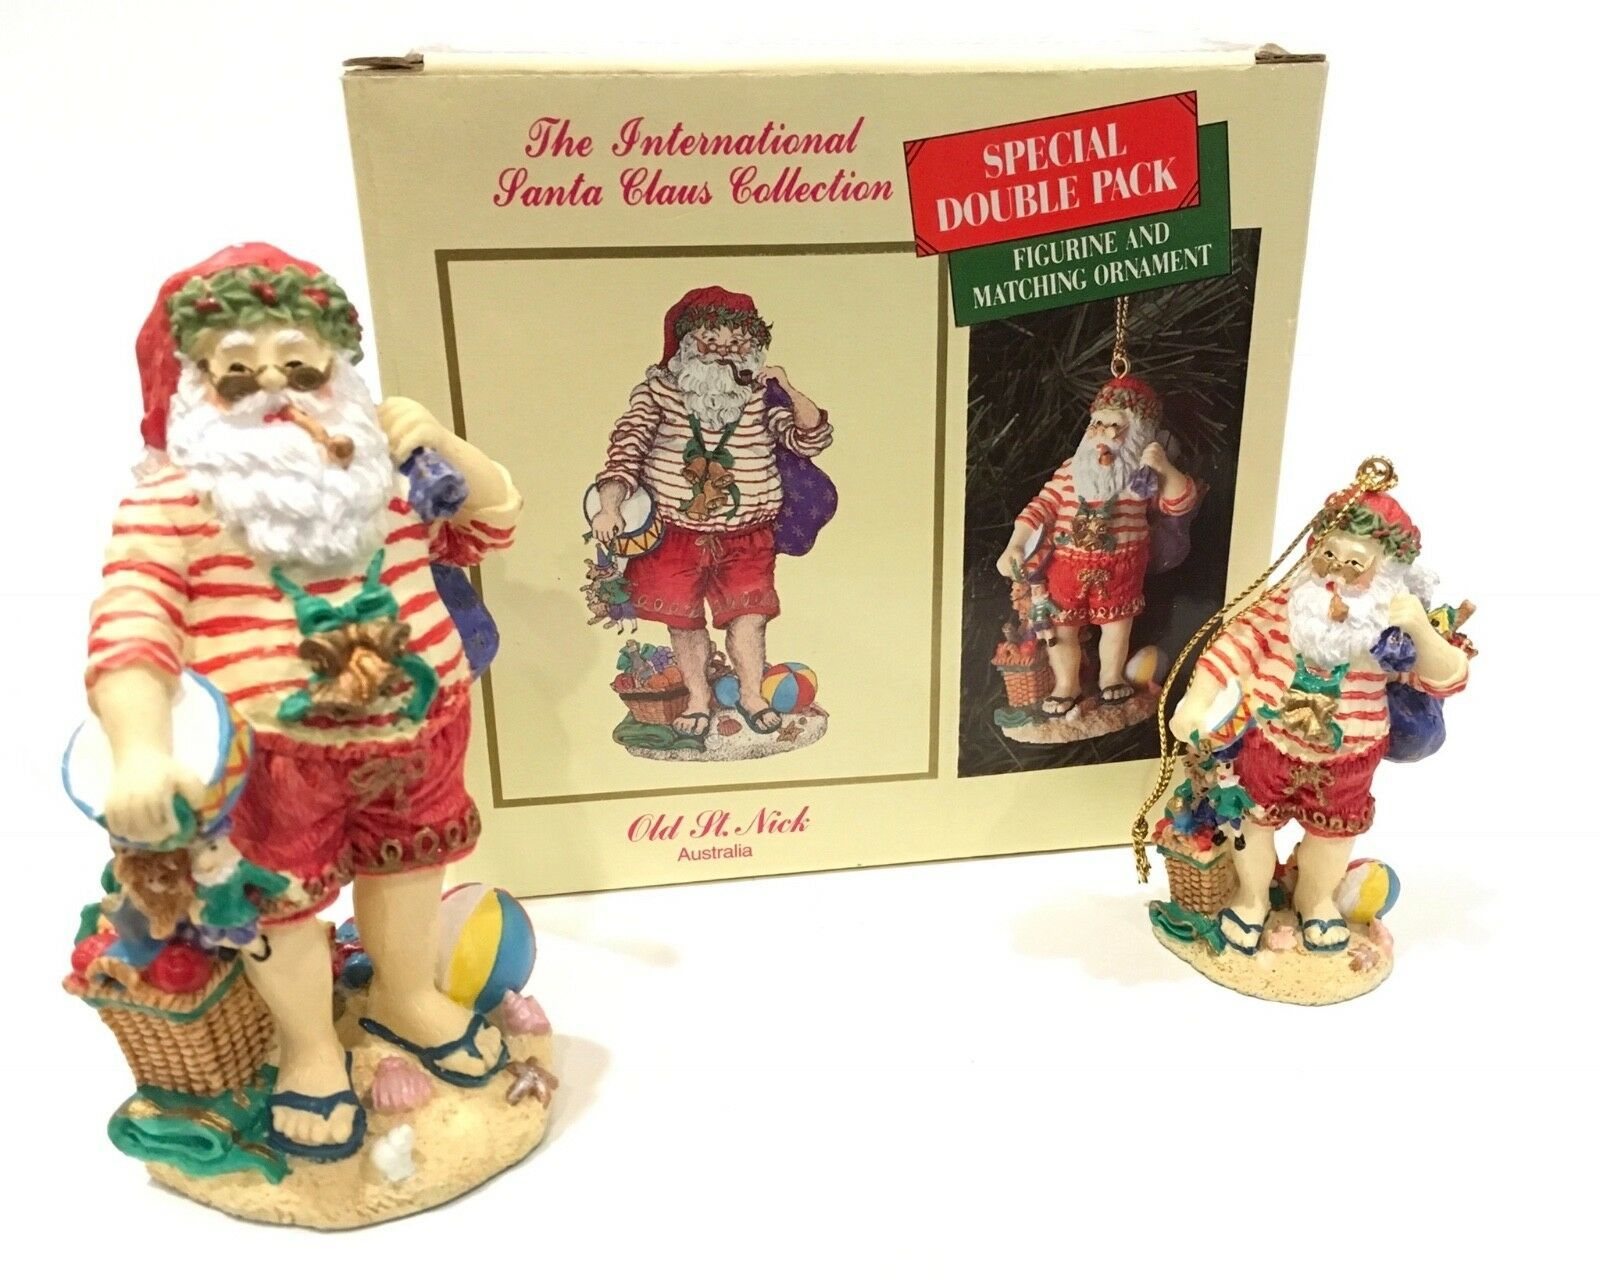 Primary image for The International Santa Claus Collection Australia Old St. Nick Double Pack IOB